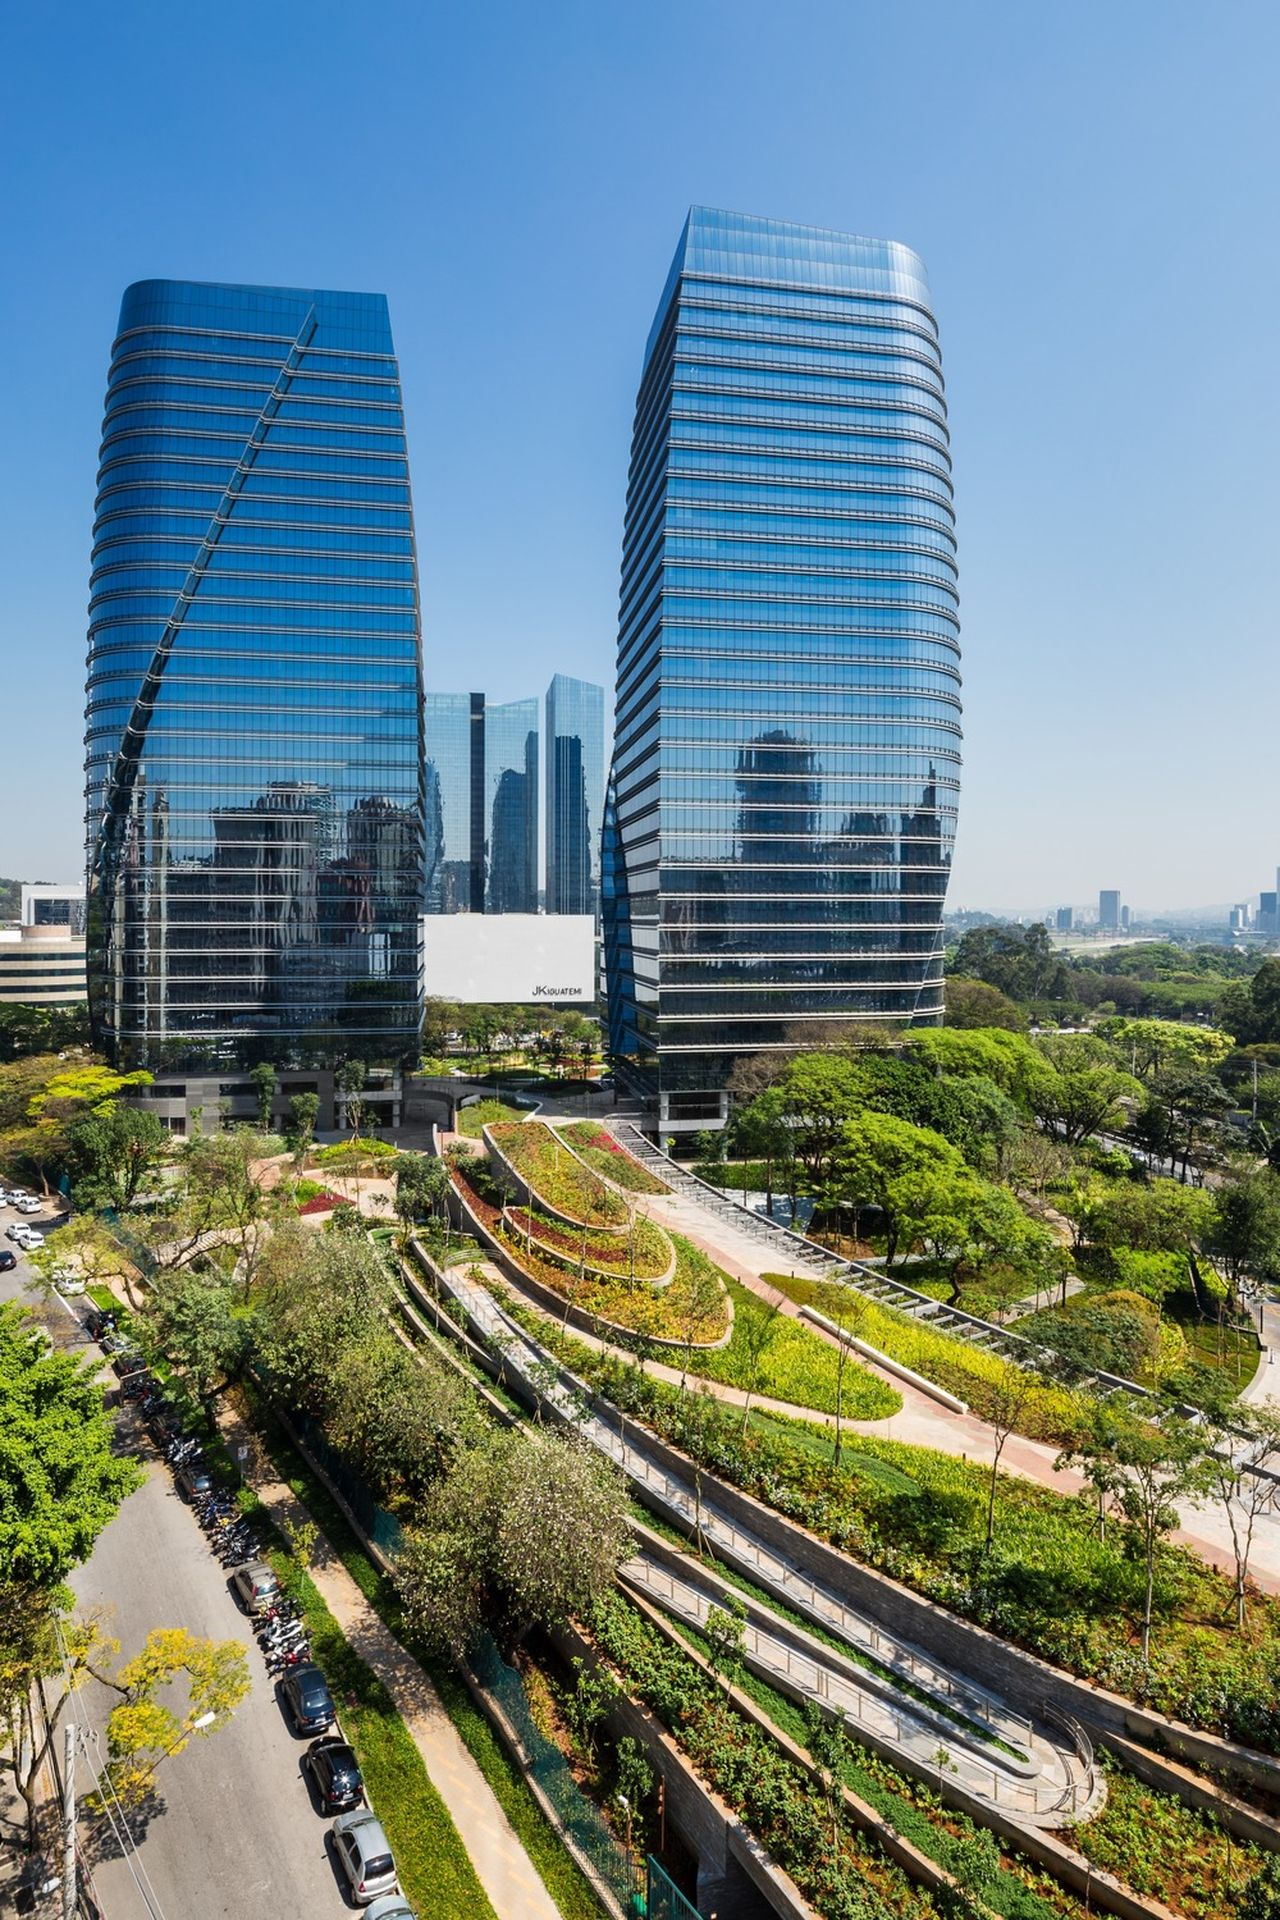 The continuous green surface weaves across the site around and through the two towers that make up the architectural program : Photo credit courtesy of © Ana Mello